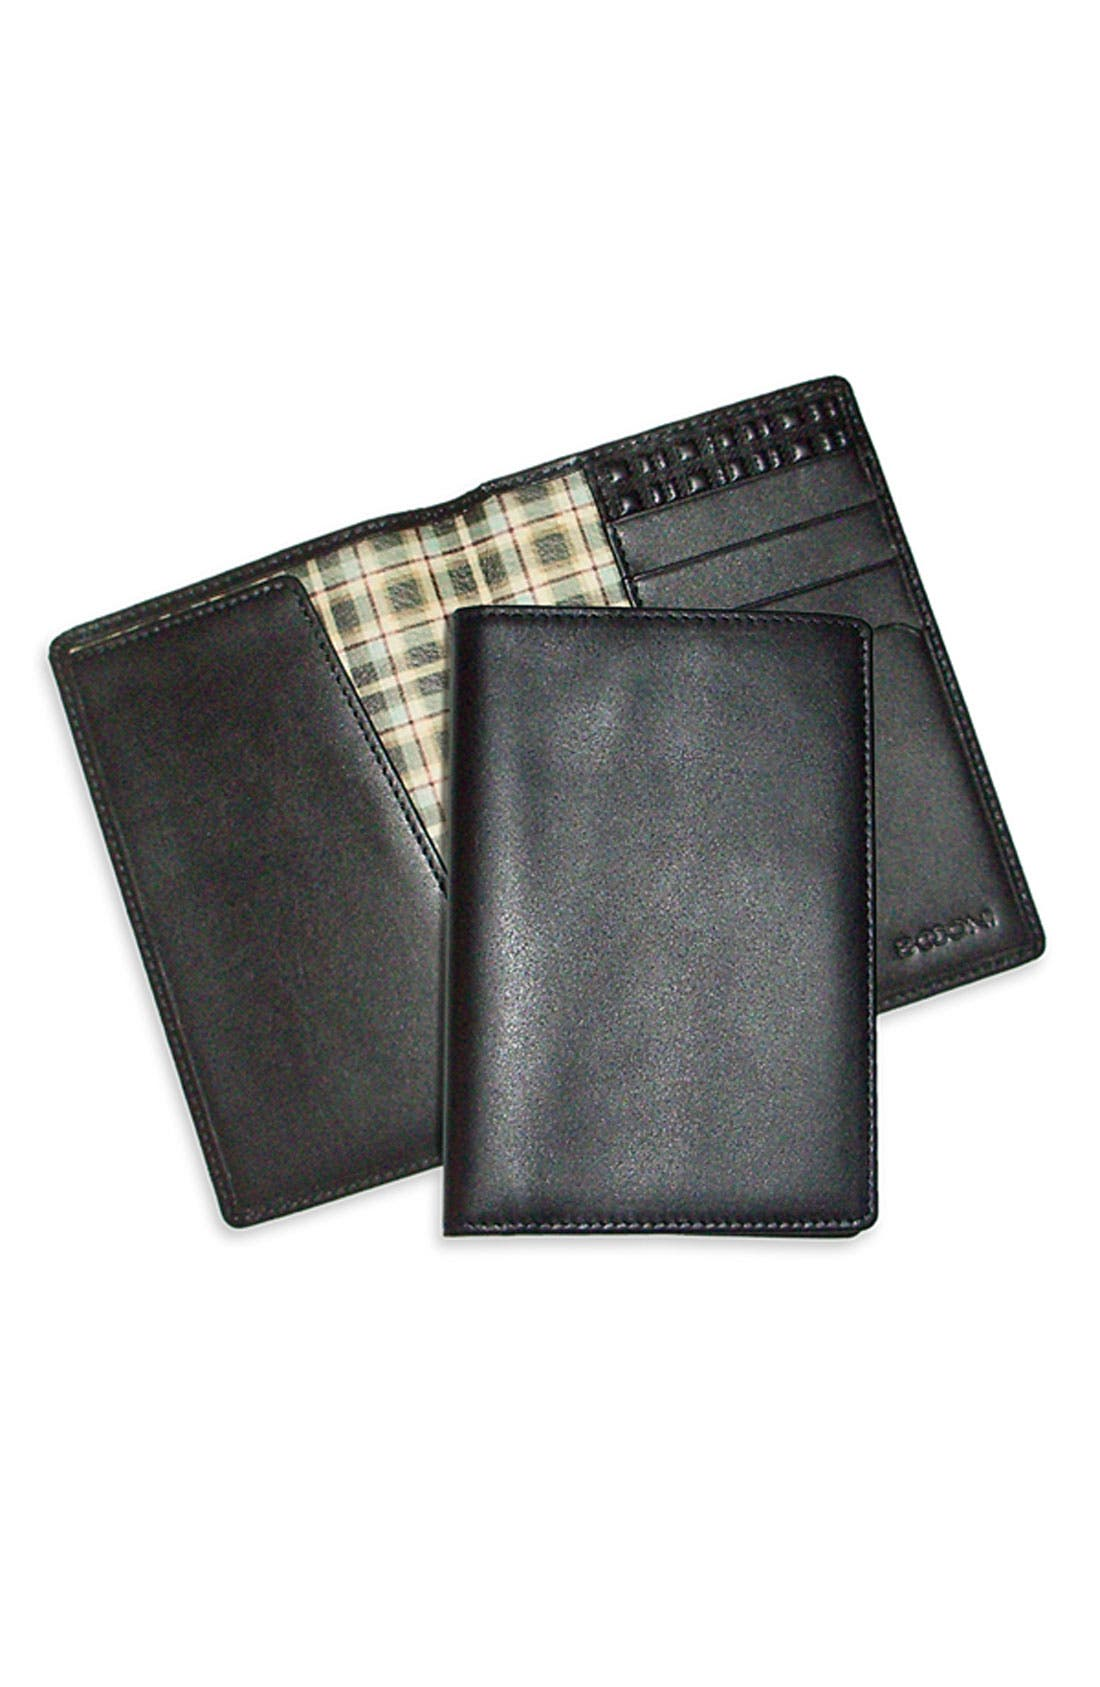 Alternate Image 1 Selected - Boconi Passport Case